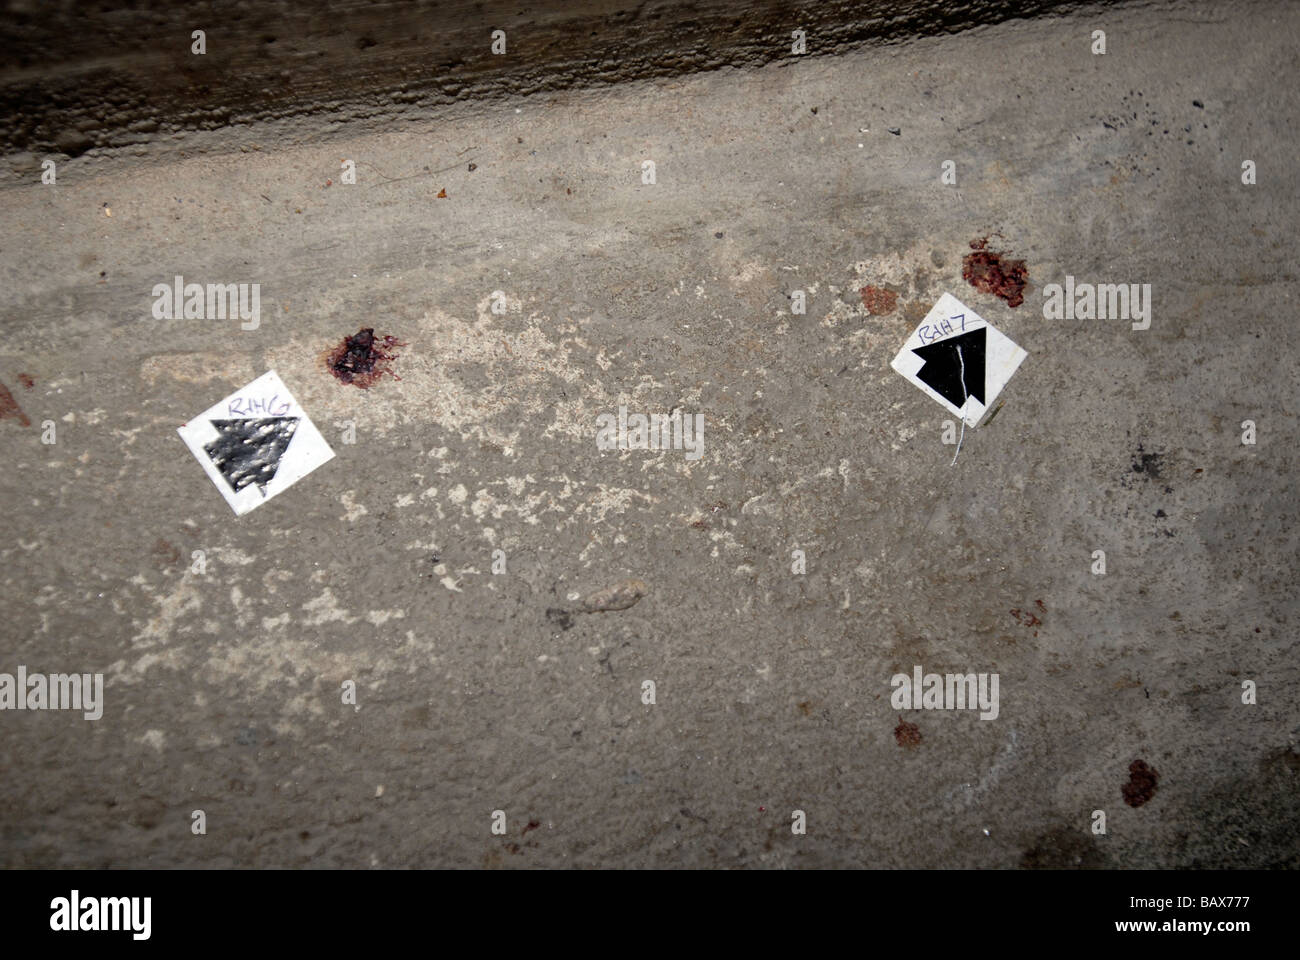 Blood spots marked by a black arrow in a crime scene - Stock Image